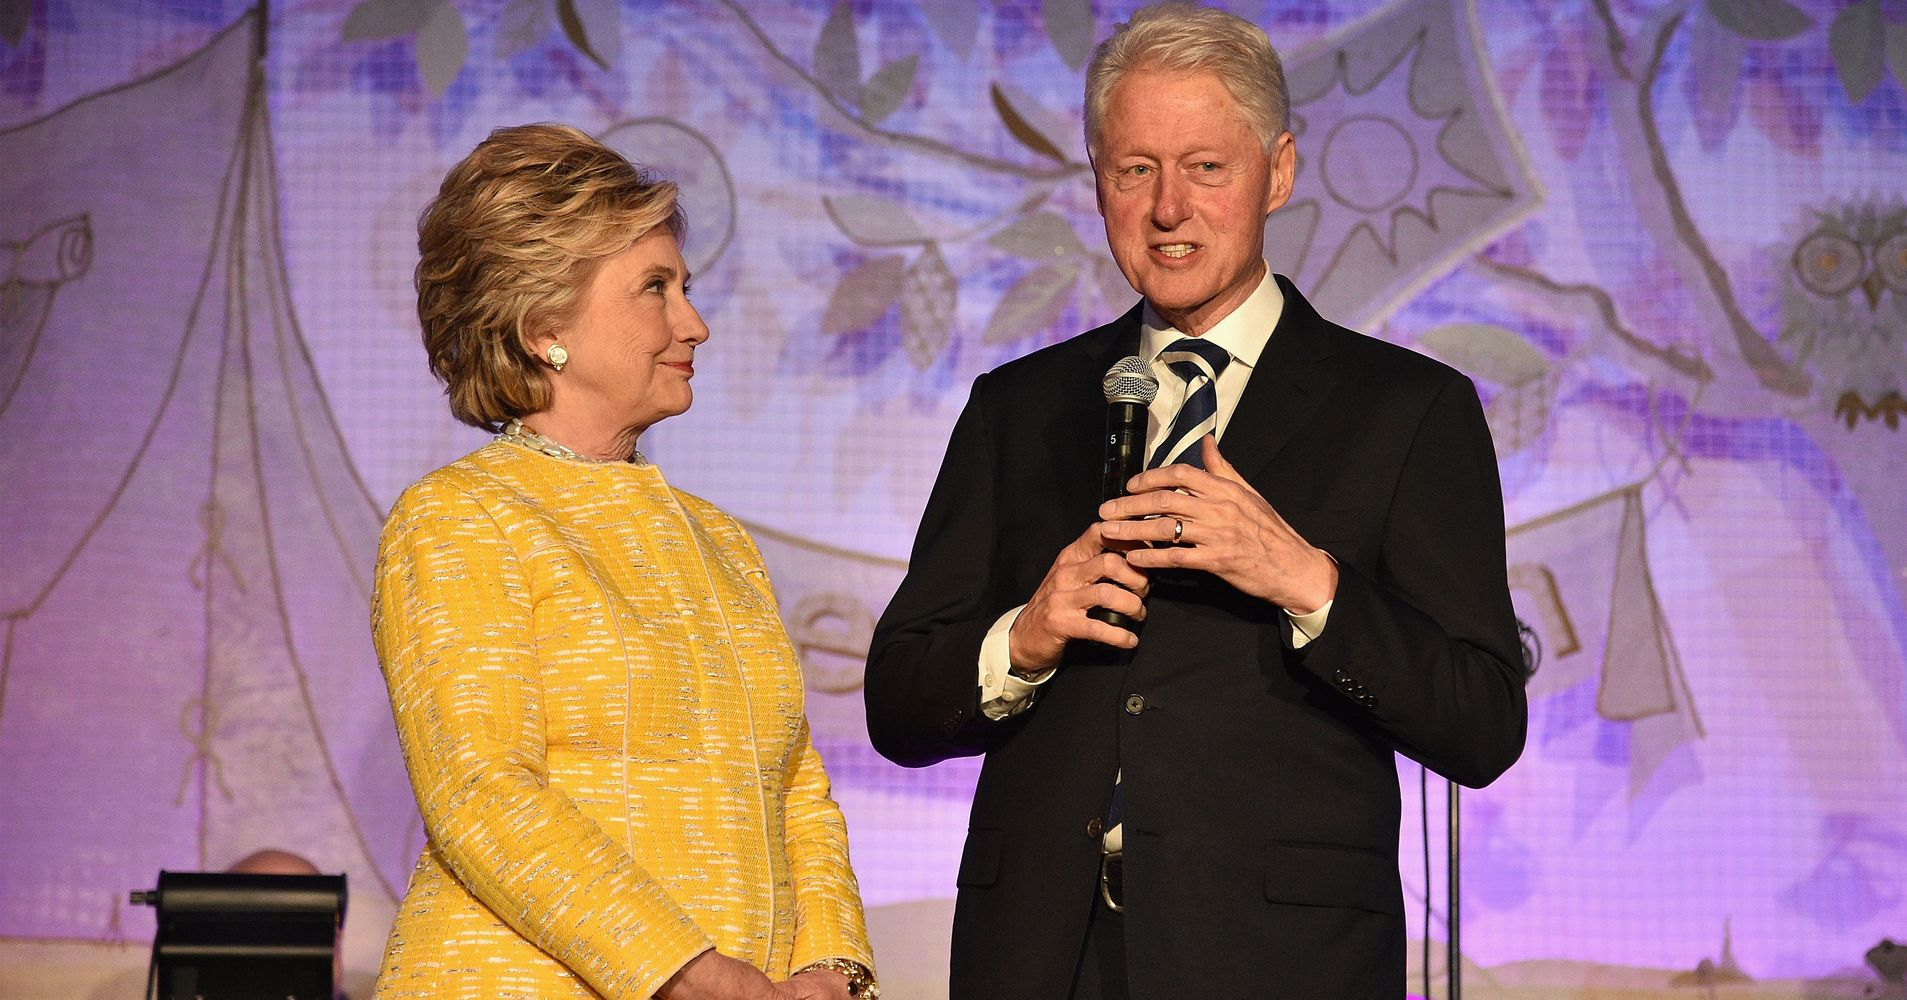 FBI Reportedly Investigating Clinton Foundation